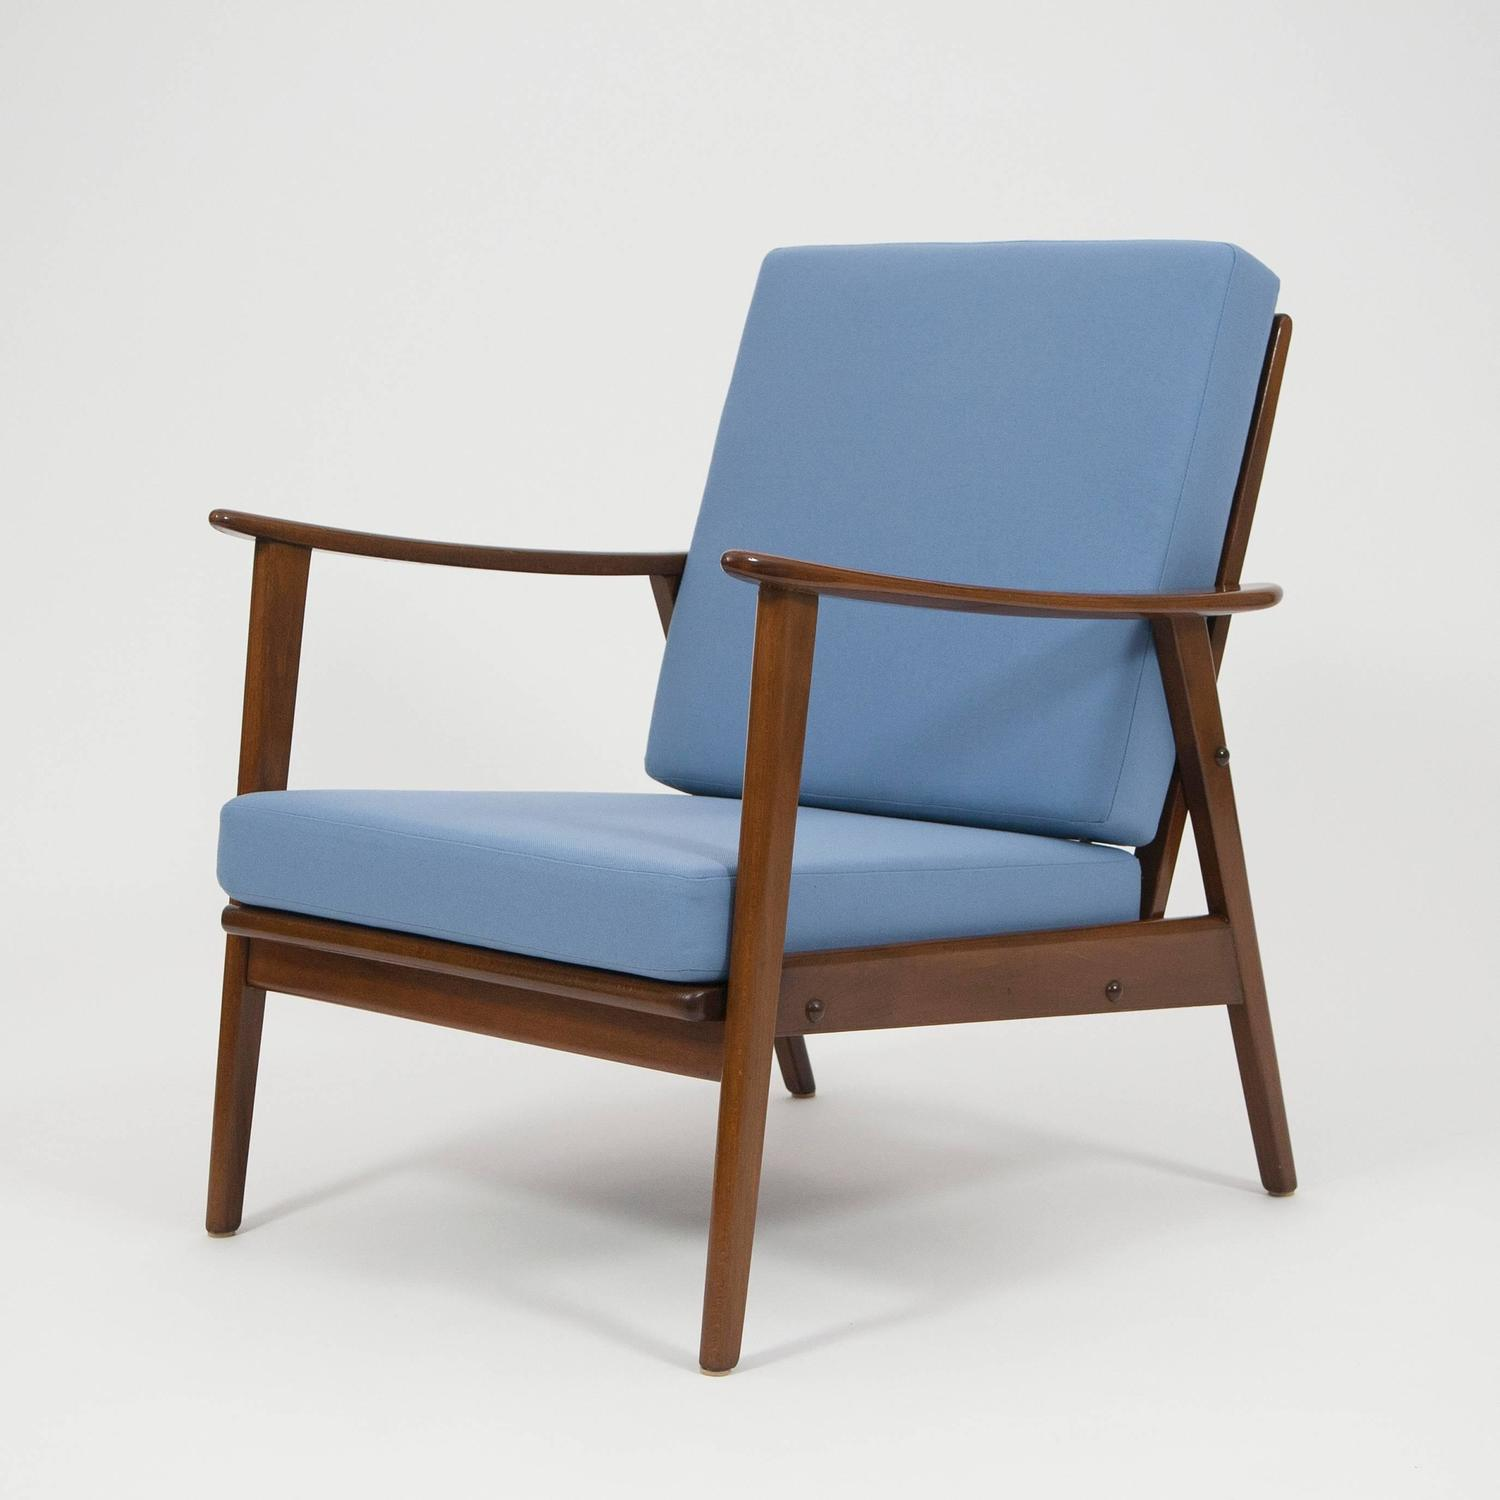 pair of mid century modern easy chairs germany 1960 for sale at 1stdibs. Black Bedroom Furniture Sets. Home Design Ideas